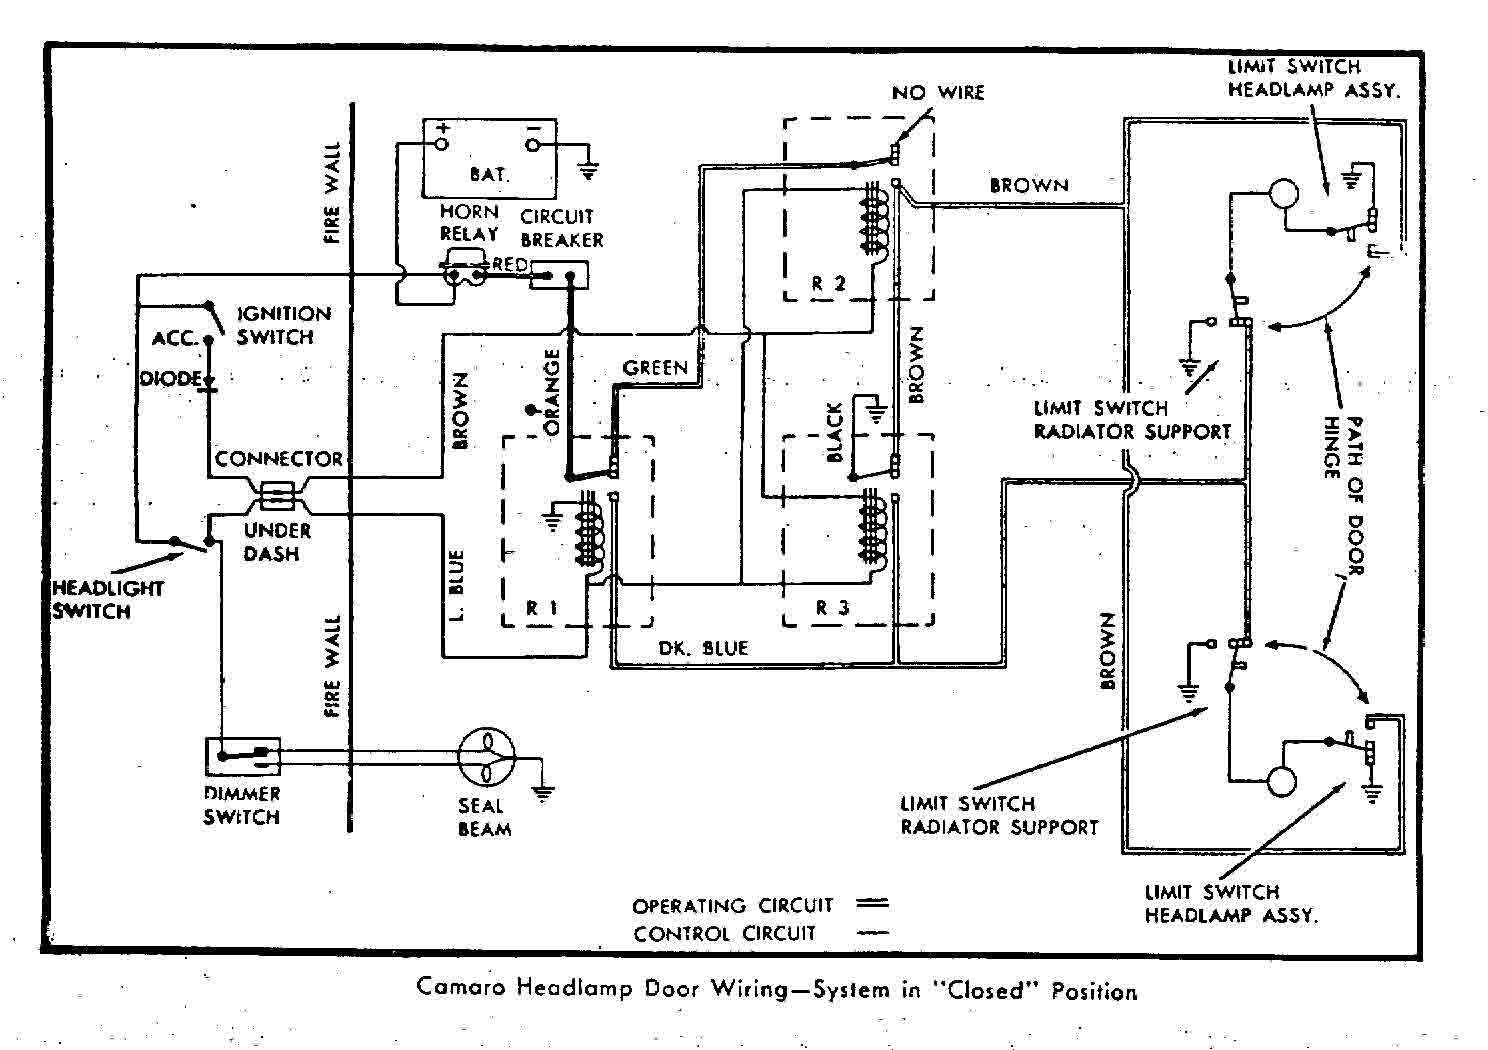 68 Chevy Wiring Diagram Starting Know About 1967 Nova 1968 Camaro Dash Simple Rh David Huggett Co Uk